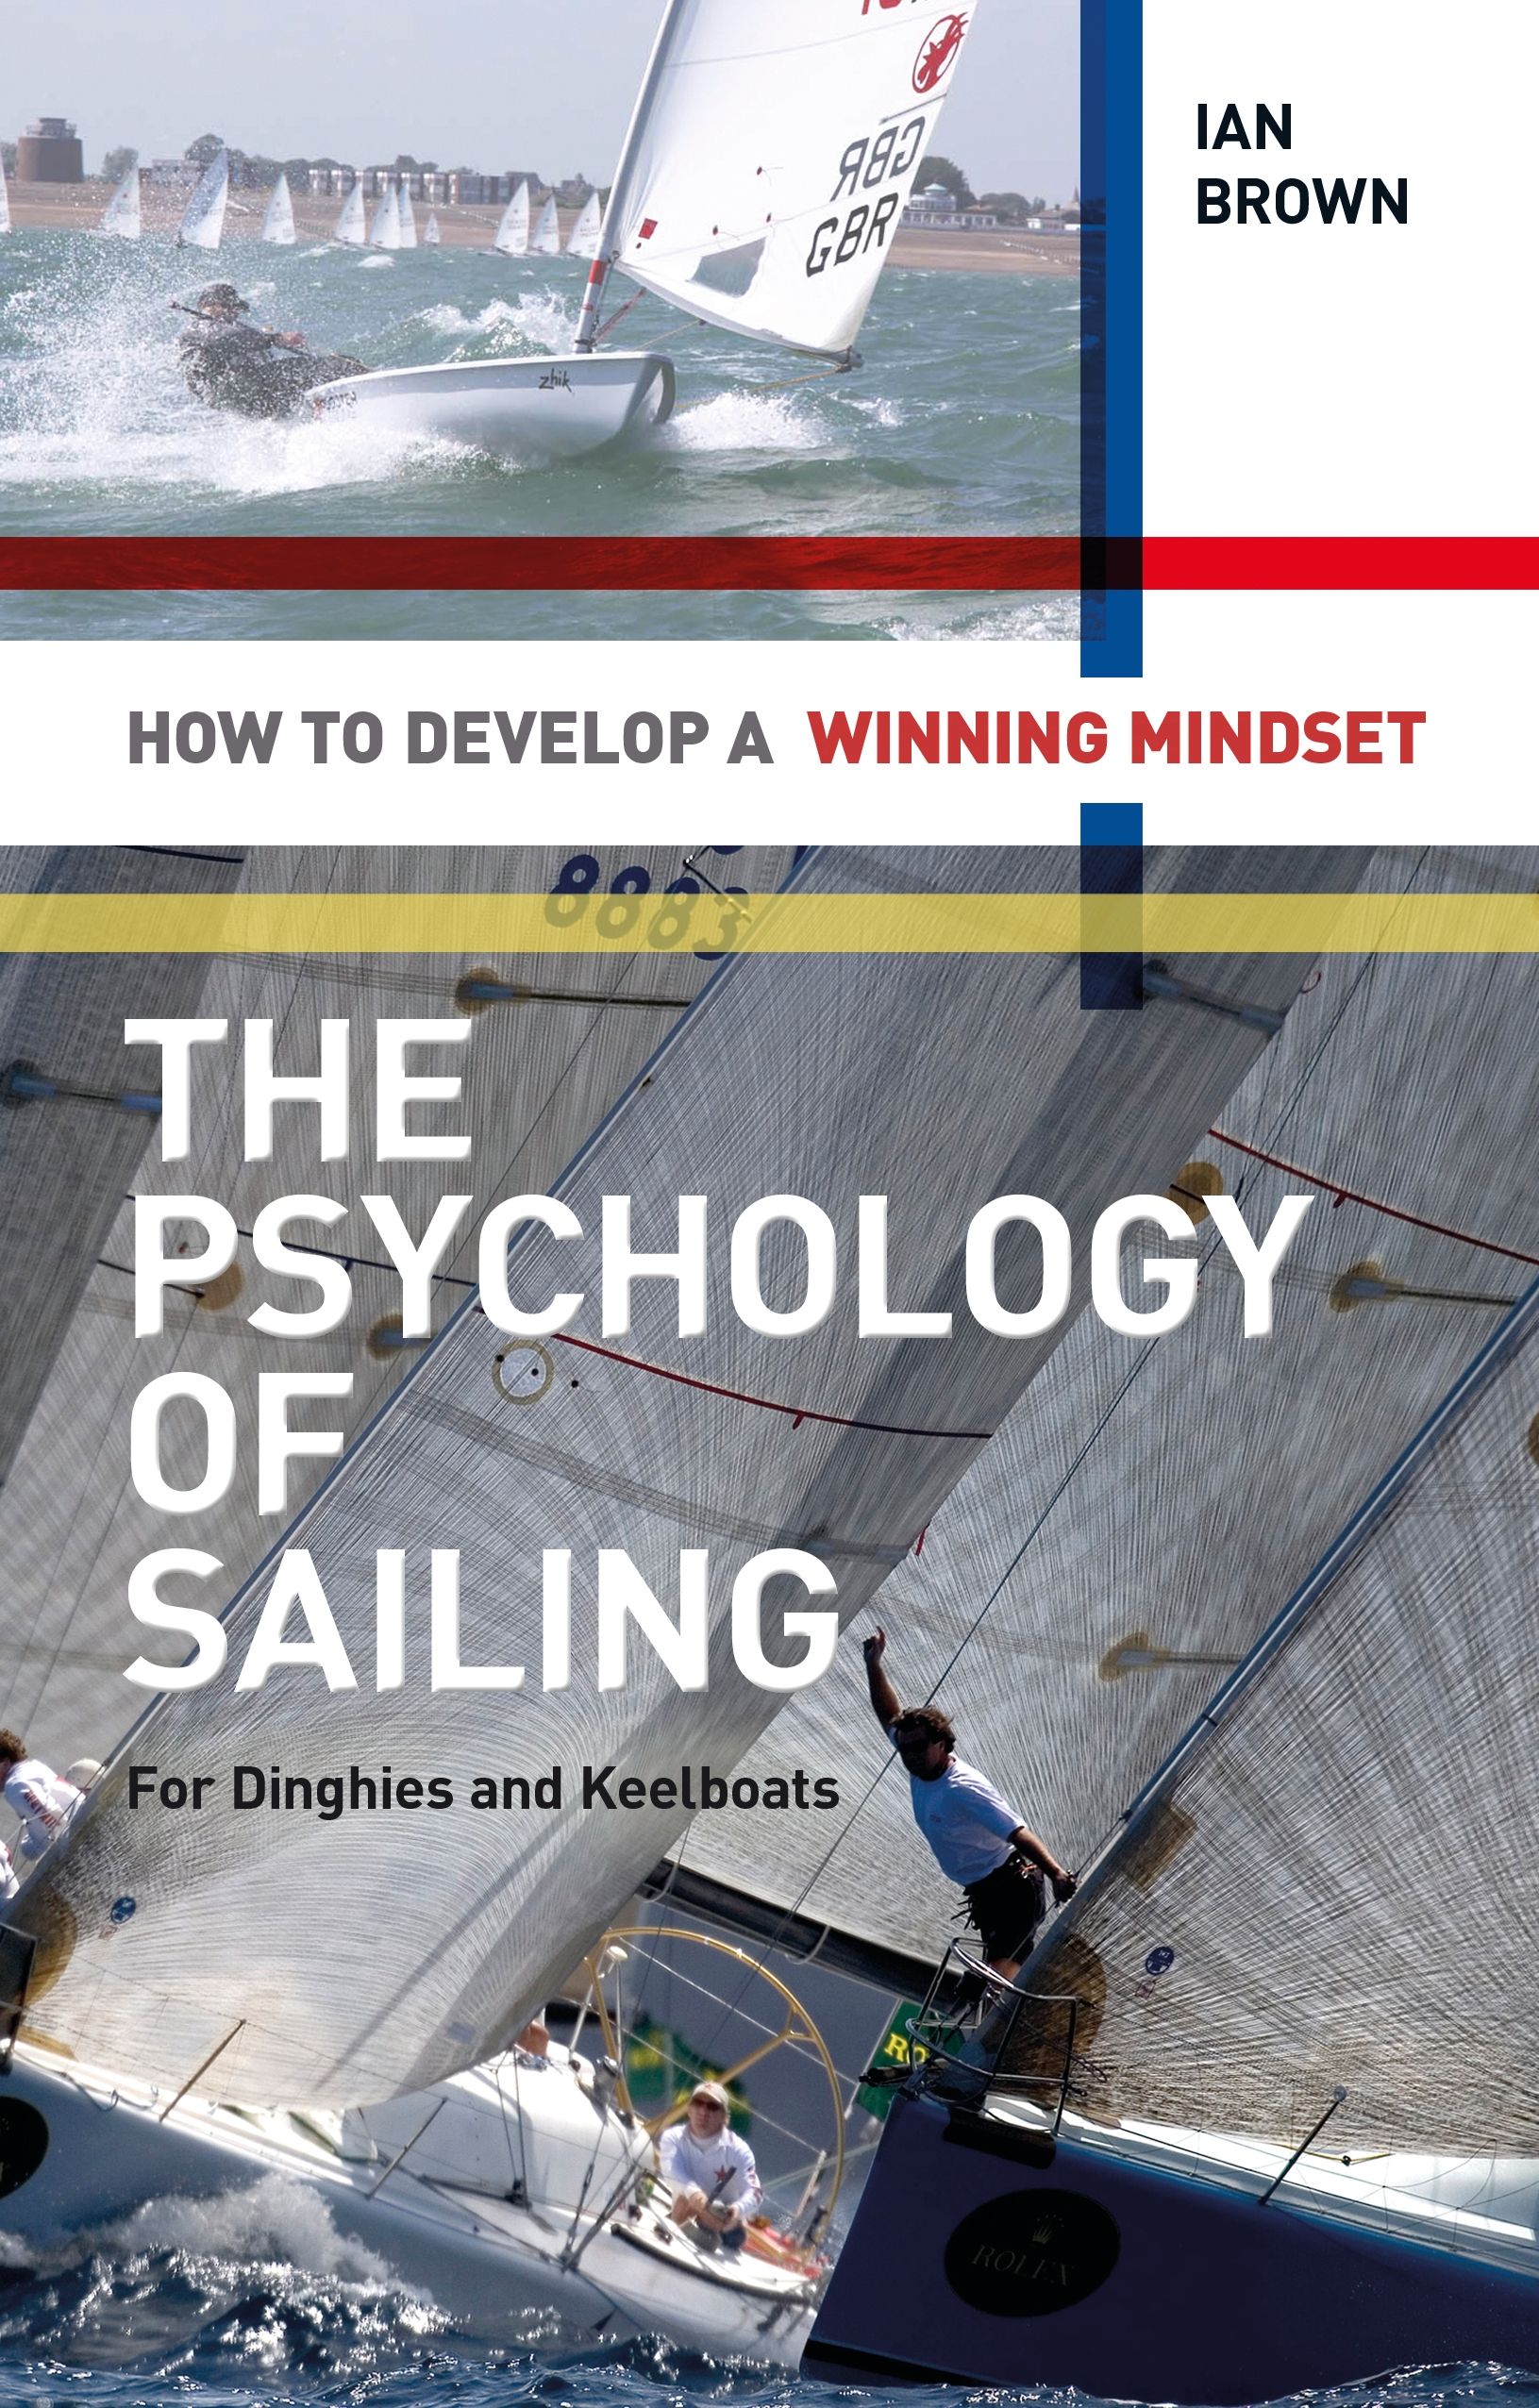 The Psychology of Sailing for Dinghies and Keelboats How to Develop a Winning Mindset